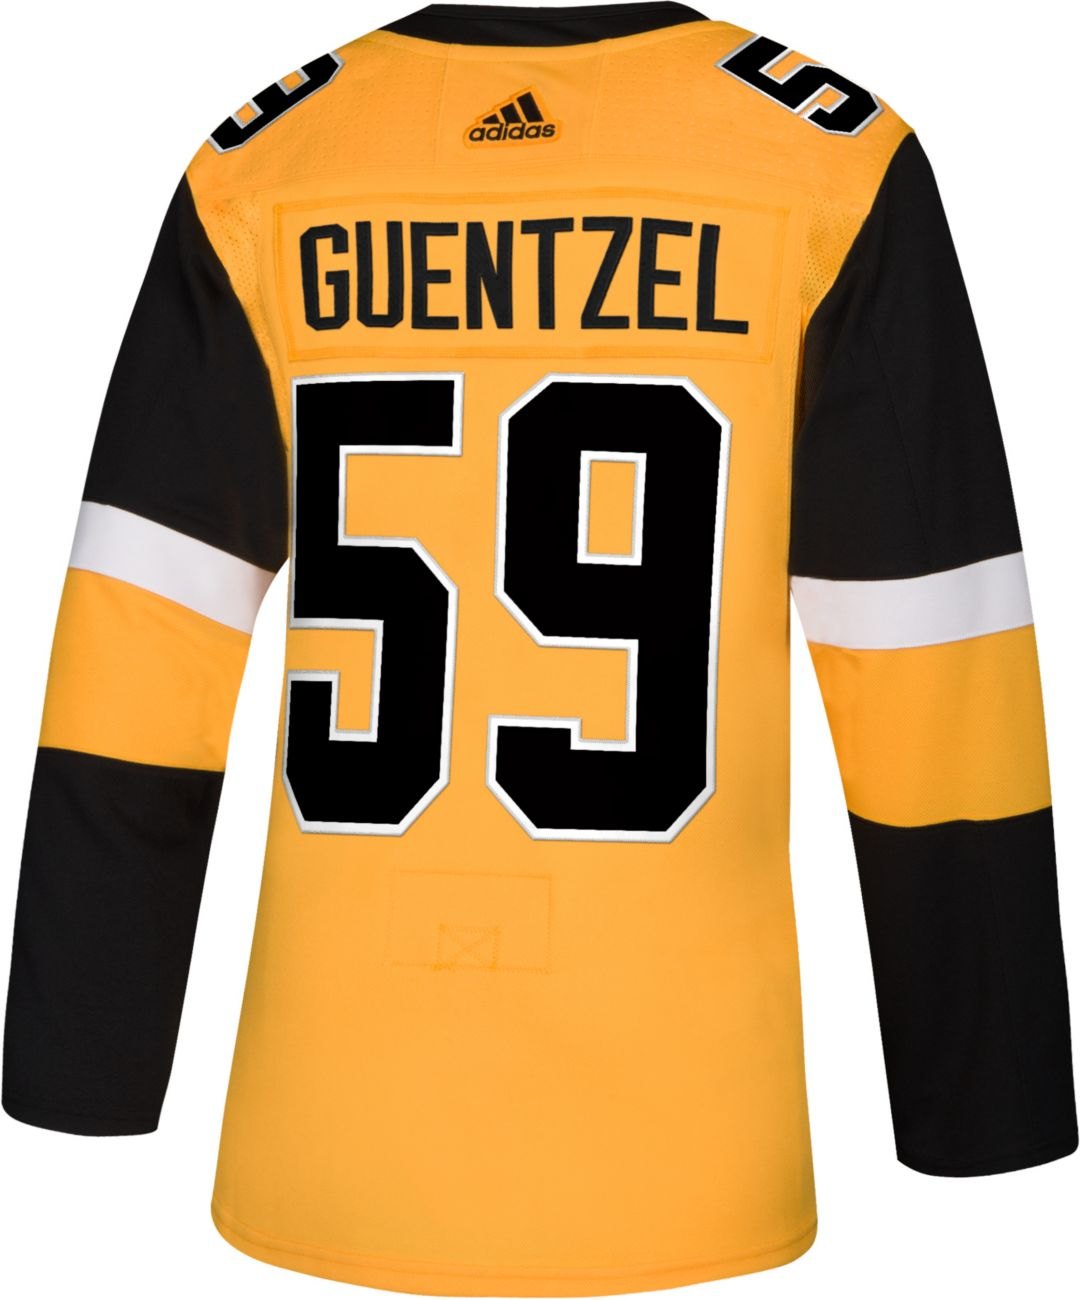 buy popular 7e710 7eae3 adidas Men's Pittsburgh Penguins Jake Guentzel #59 Authentic Pro Alternate  Jersey